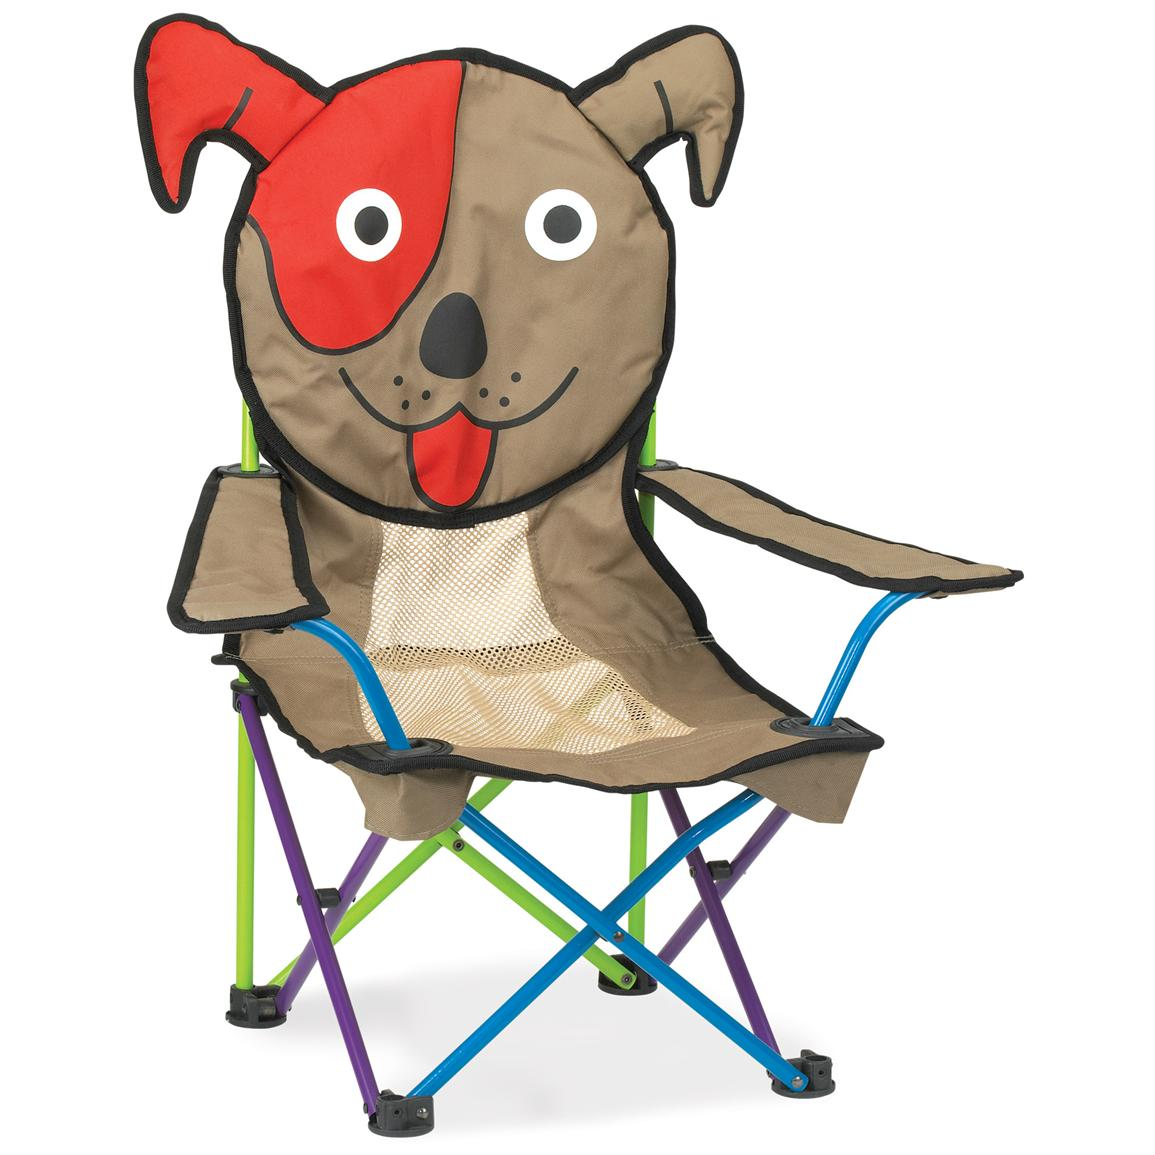 Pacific Play Tents® Pat the Puppy Chair